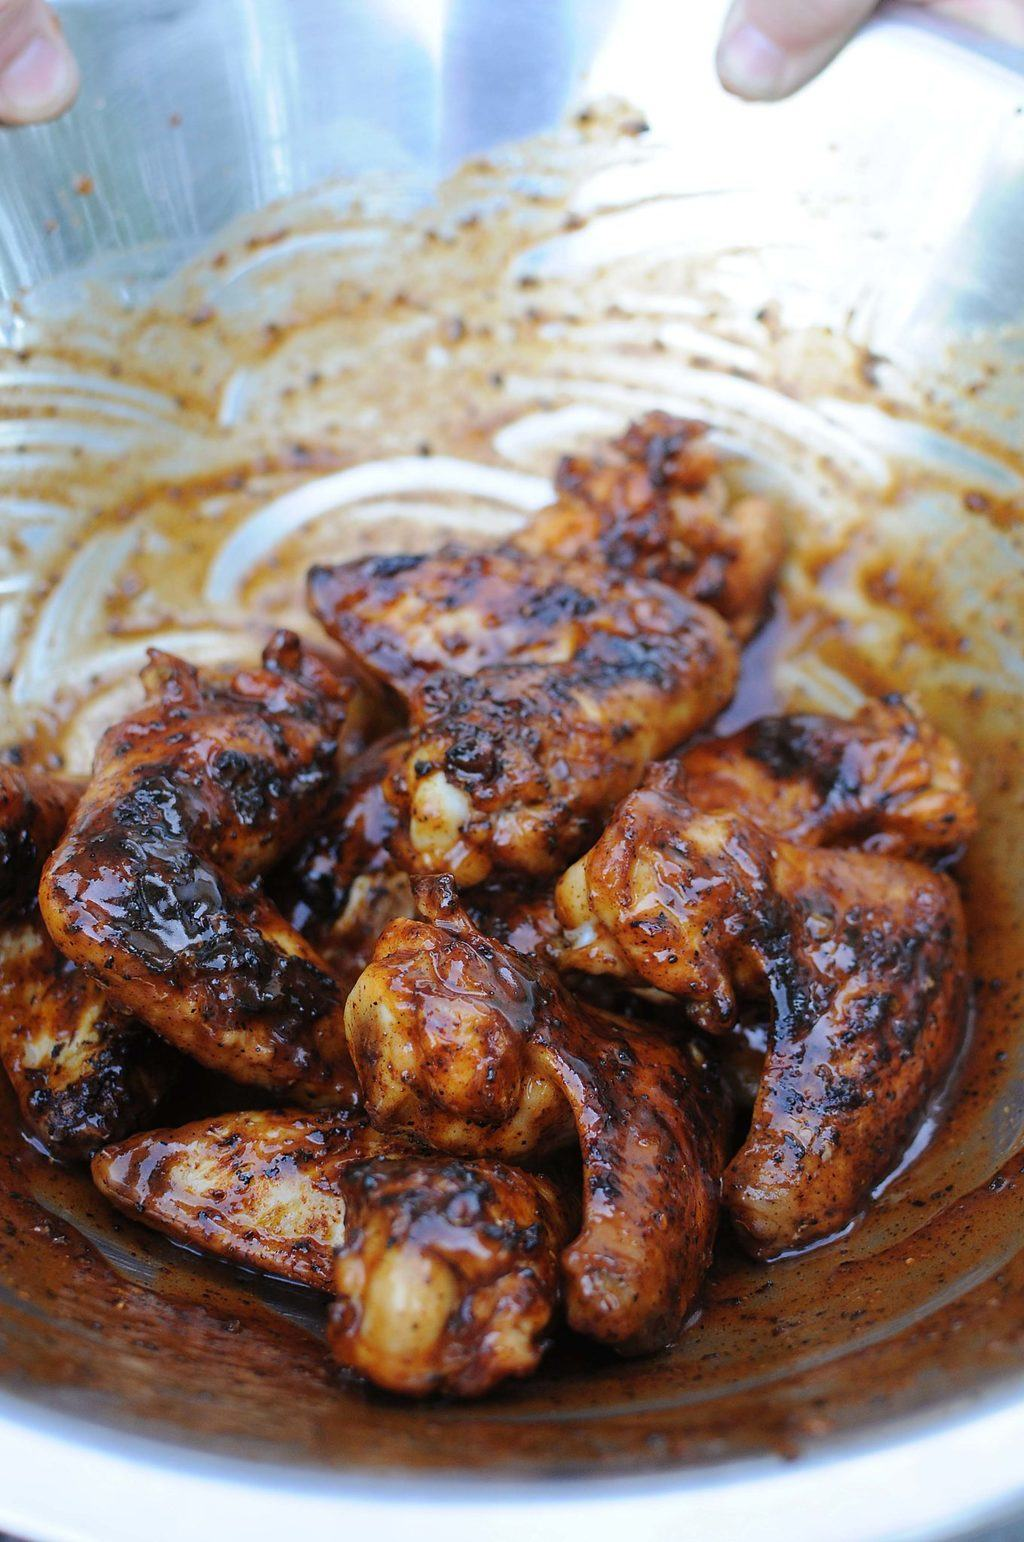 Saucy Barbecued Chicken Wings